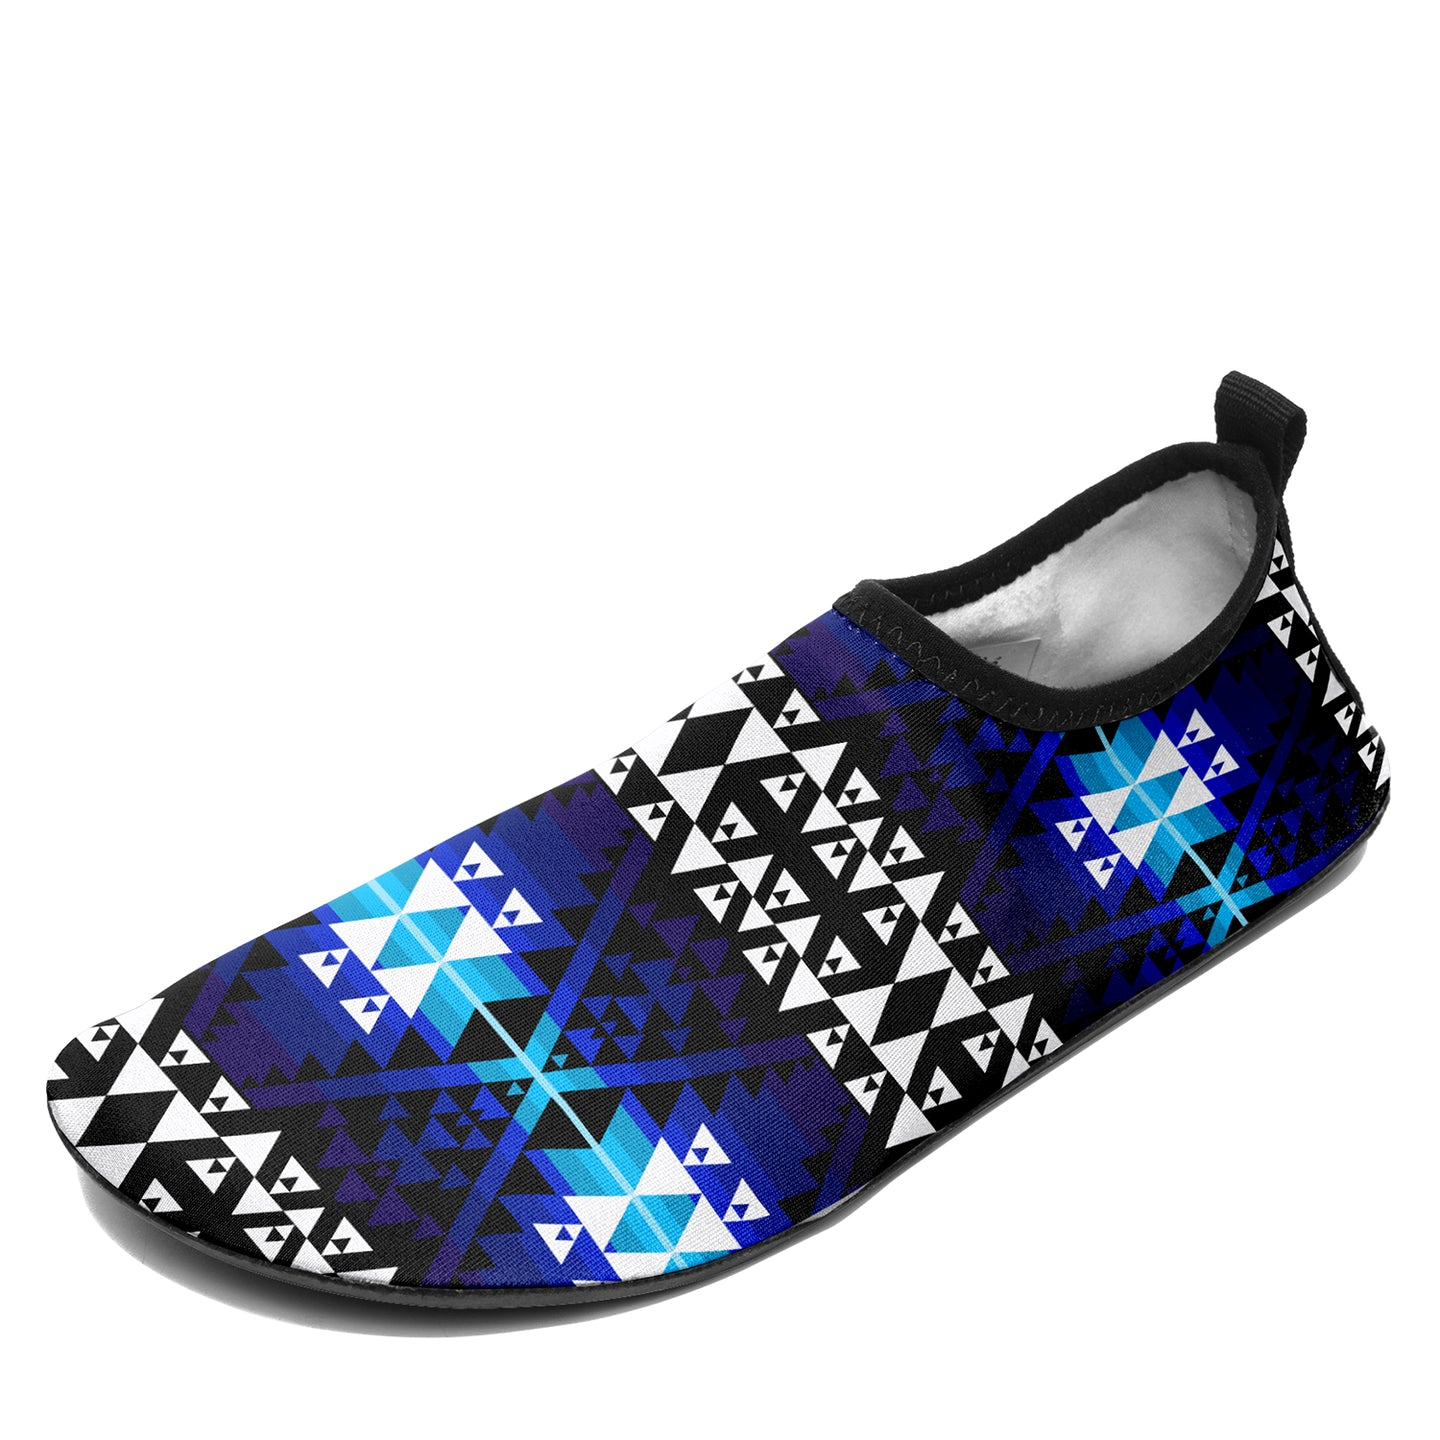 Writing on Stone Night Watch Sockamoccs Slip On Shoes